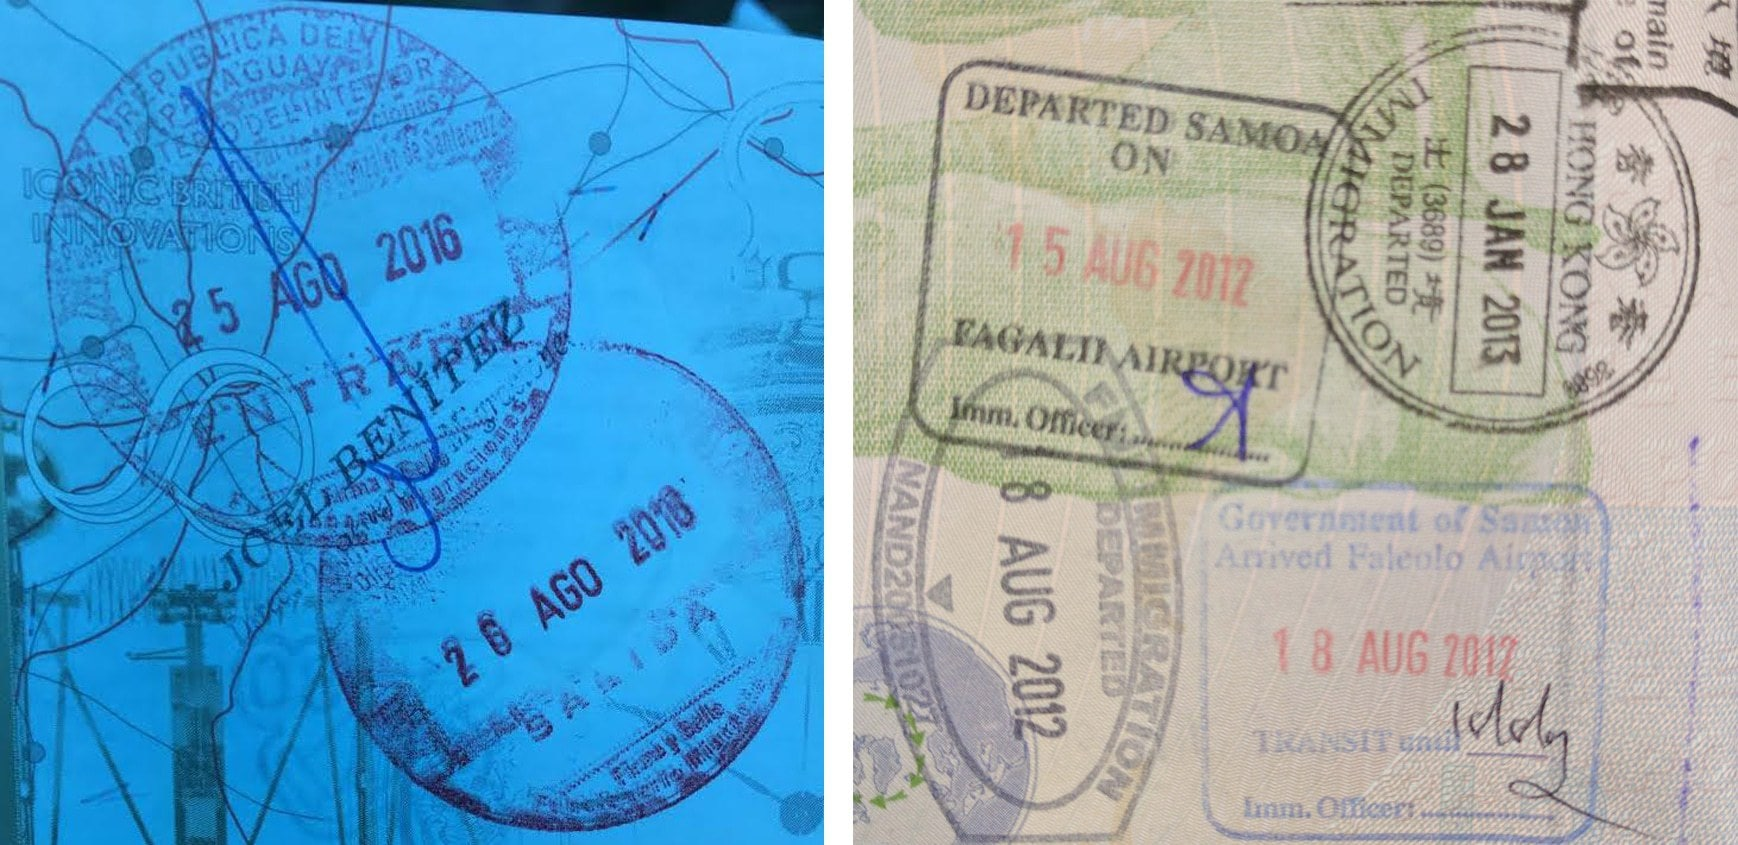 Passport stamp for Paraguay and Samoa